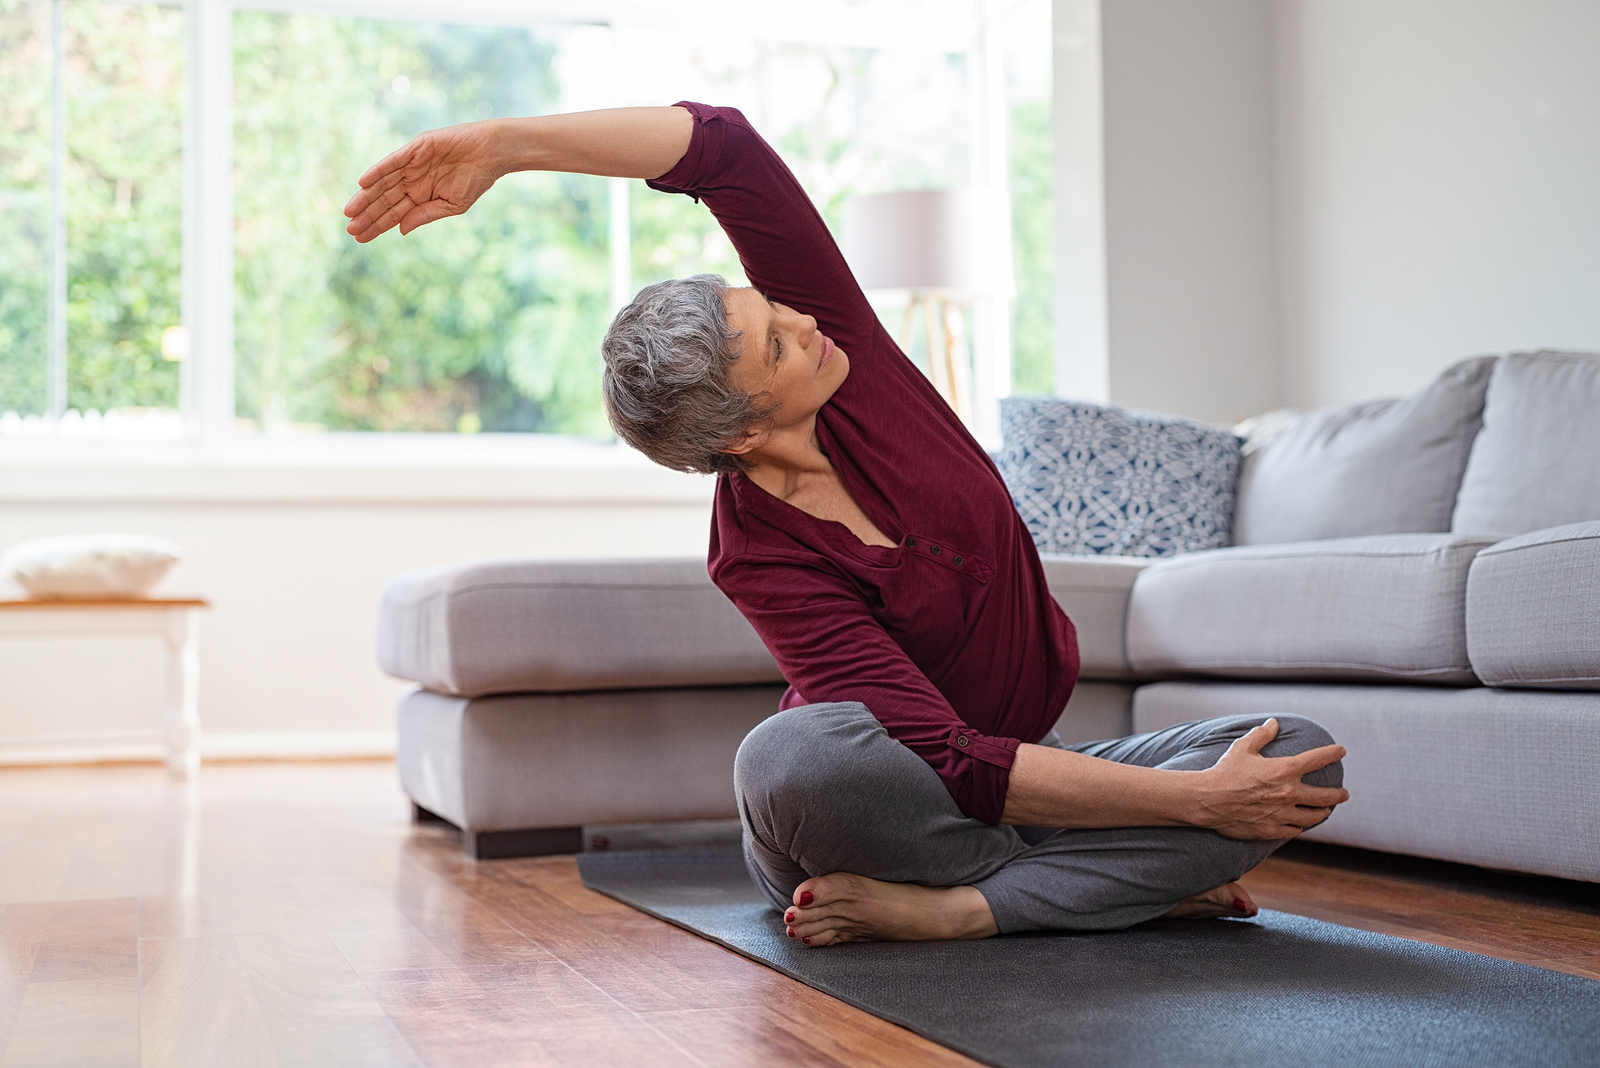 An older woman stretching and exercising from the comfort of her own home